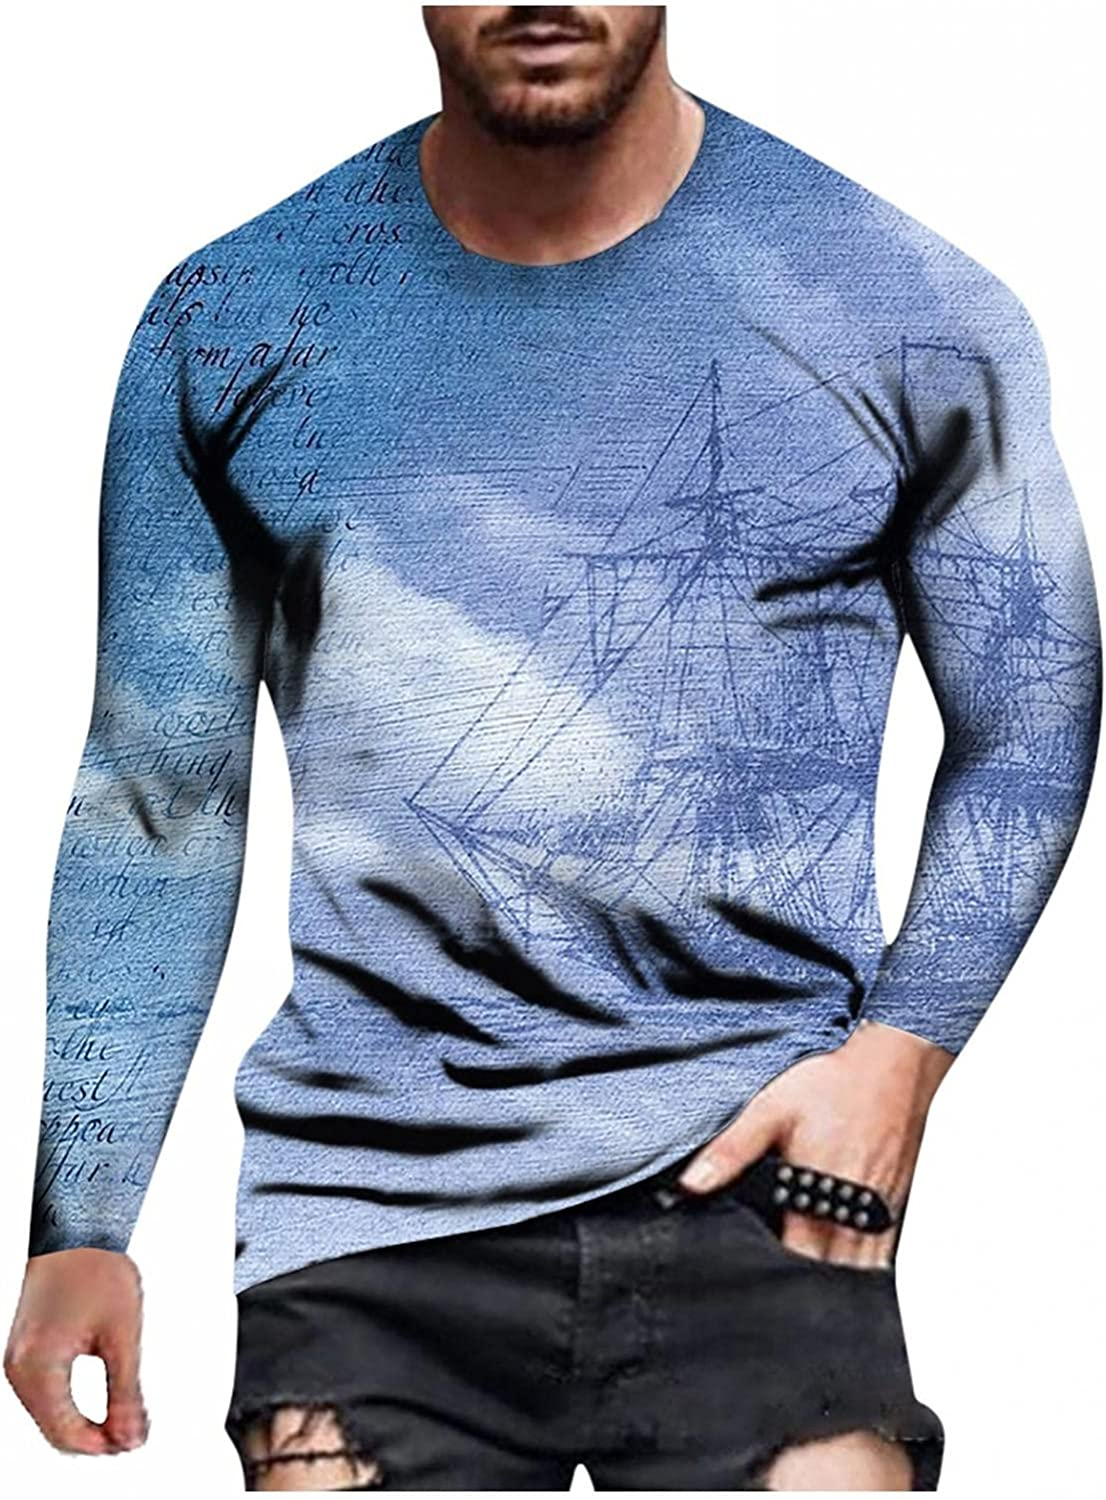 Long Sleeve Tee Shirts for Men Abstract Graffiti Athletic Sweatshirt Muscle T-Shirts Workout Gym Sport Pullover